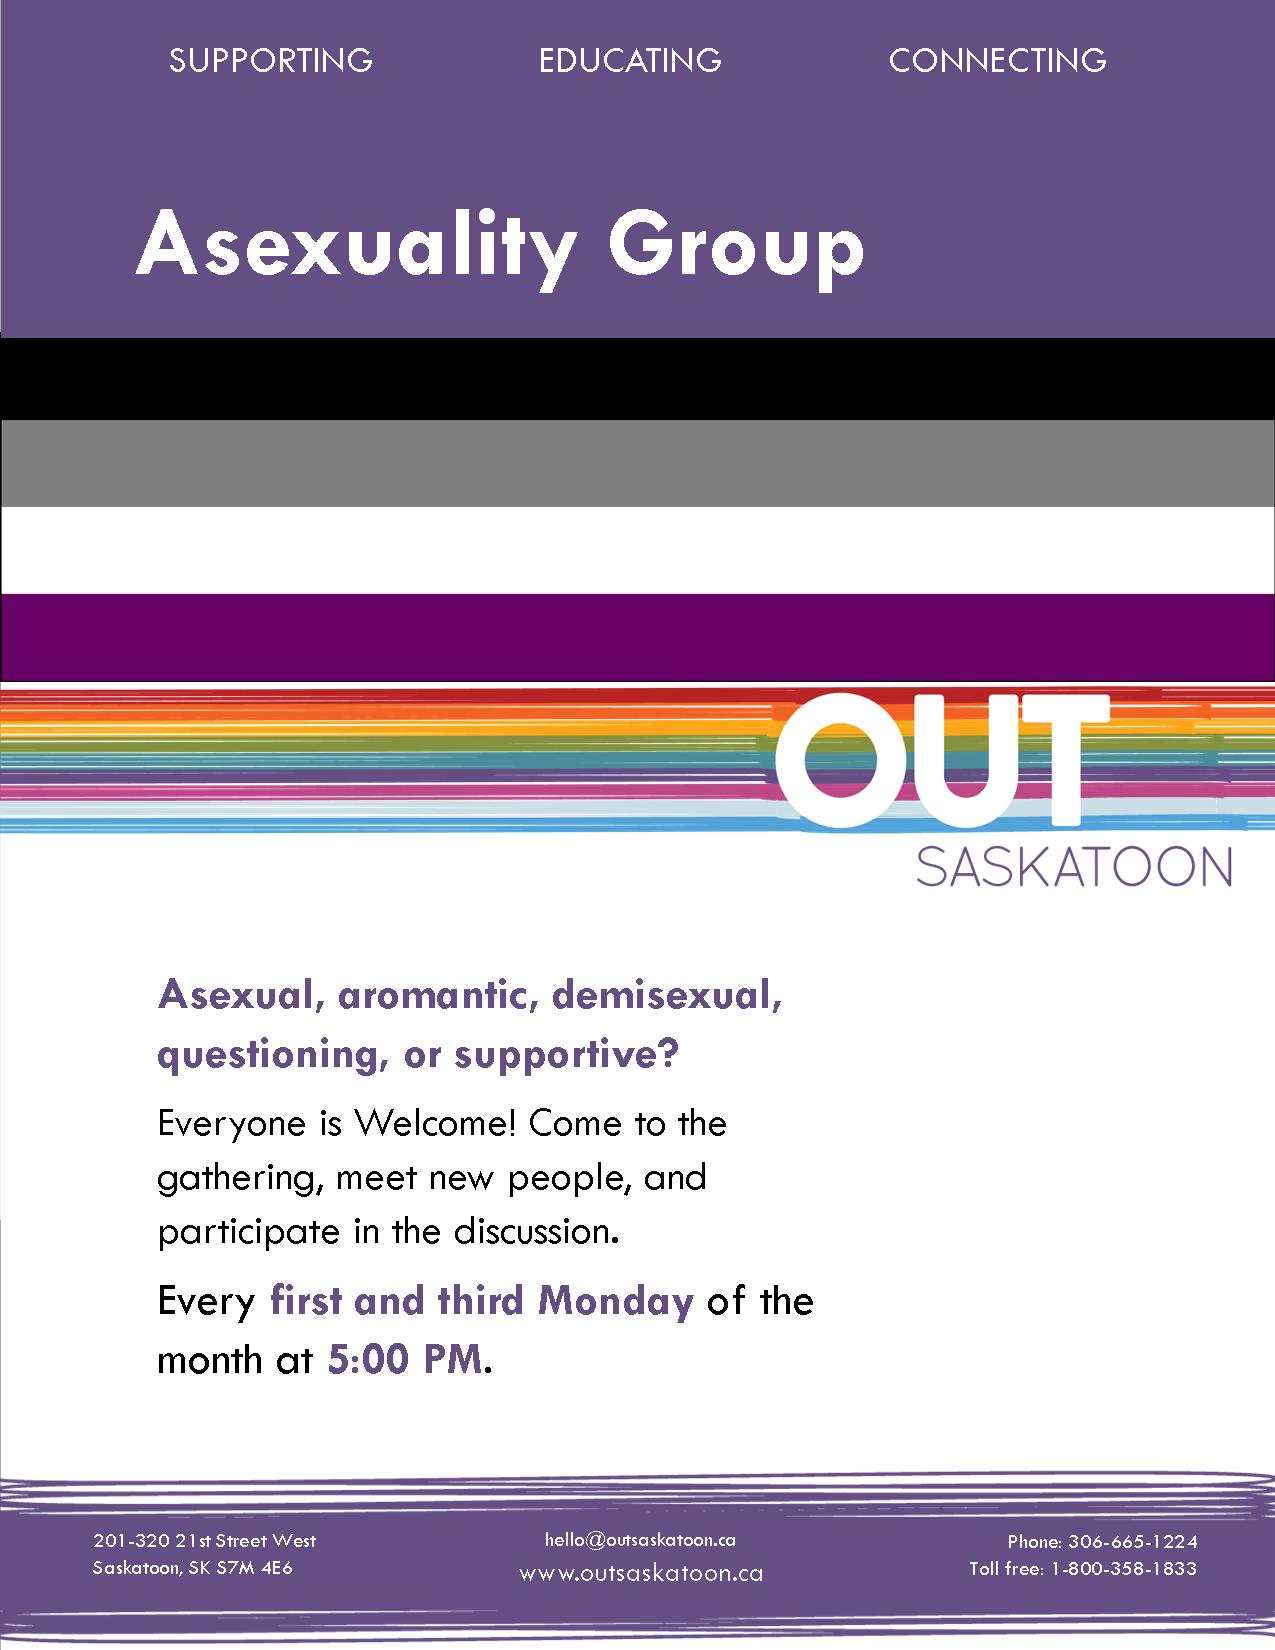 Asexual support group